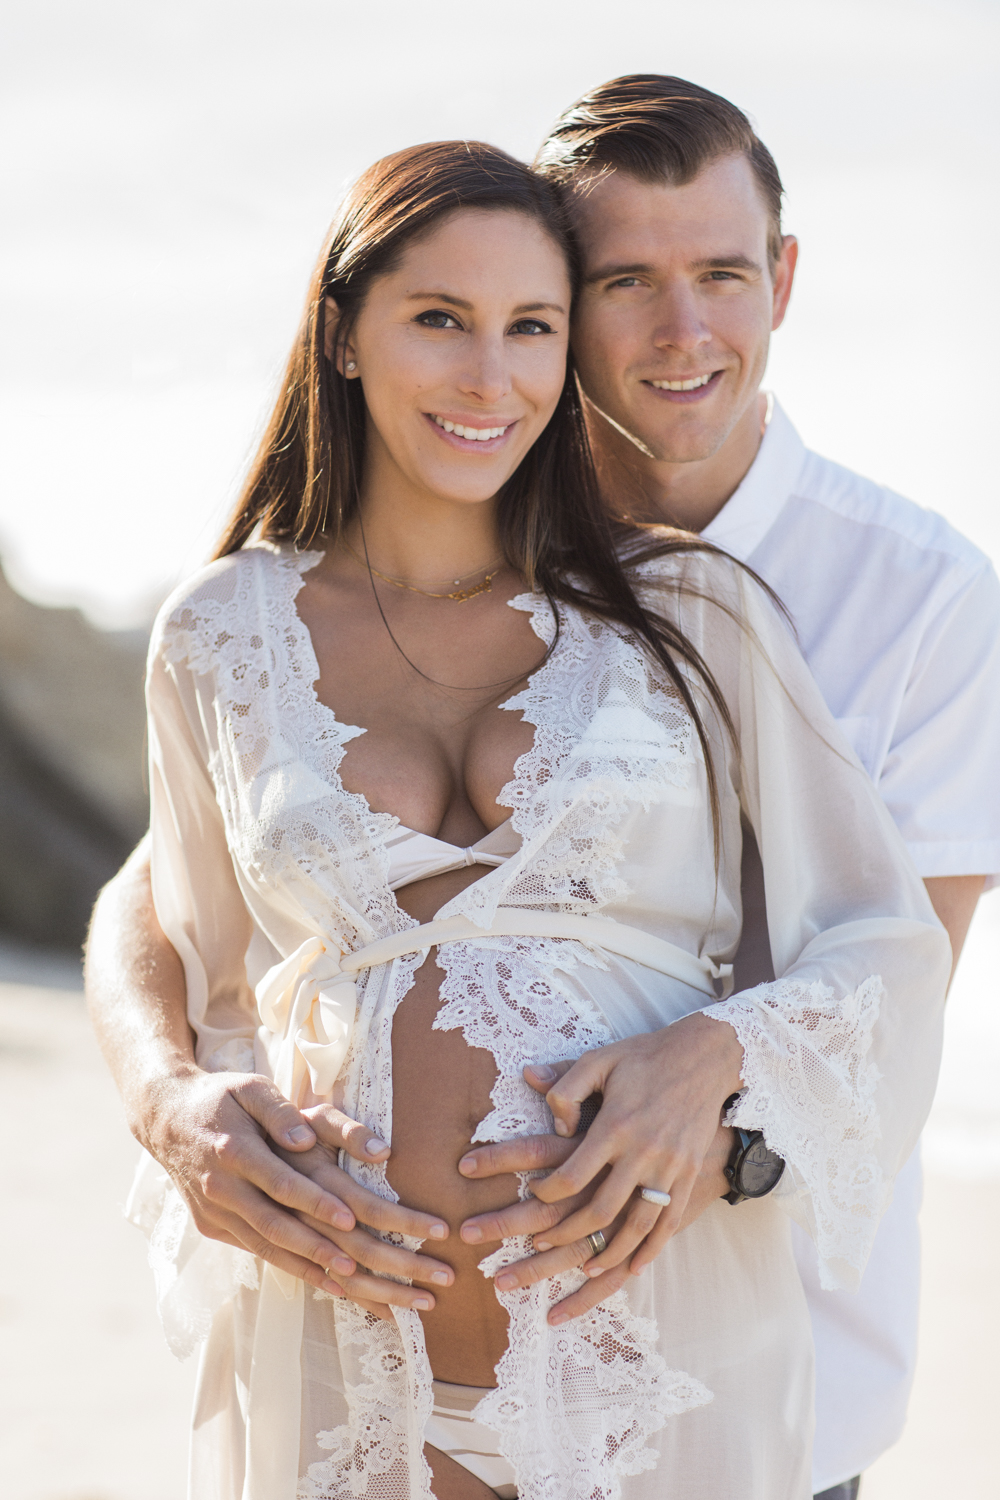 LagunaBeach_Family_MaternityShoot_SidneyKraemer_Low-25.jpg